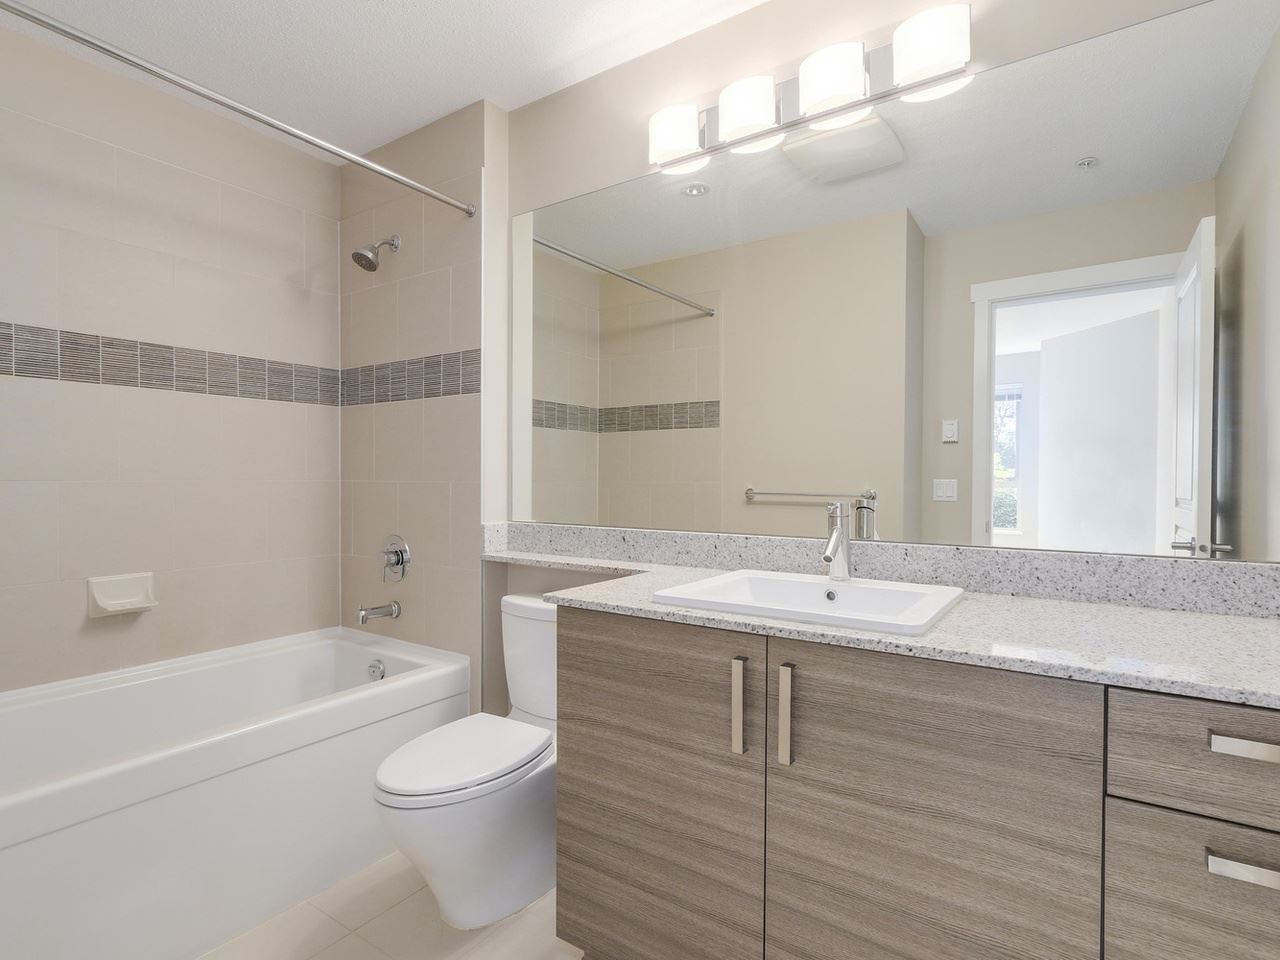 """Photo 9: Photos: 108 1150 KENSAL Place in Coquitlam: New Horizons Condo for sale in """"Windsor Gate"""" : MLS®# R2102595"""